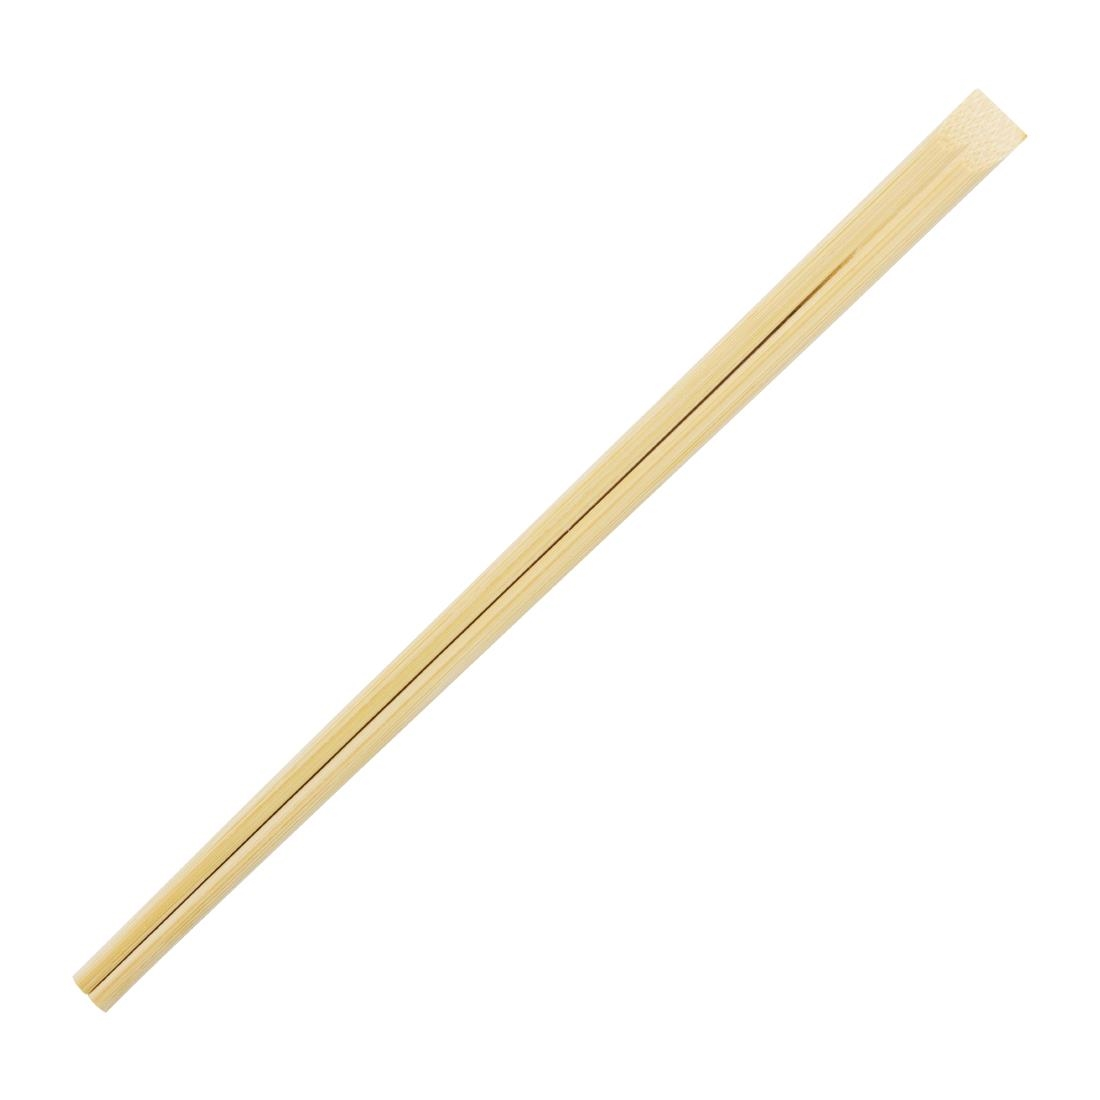 Image of Fiesta Green Biodegradable Bamboo Chopsticks (Pack of 100) Pack of 100